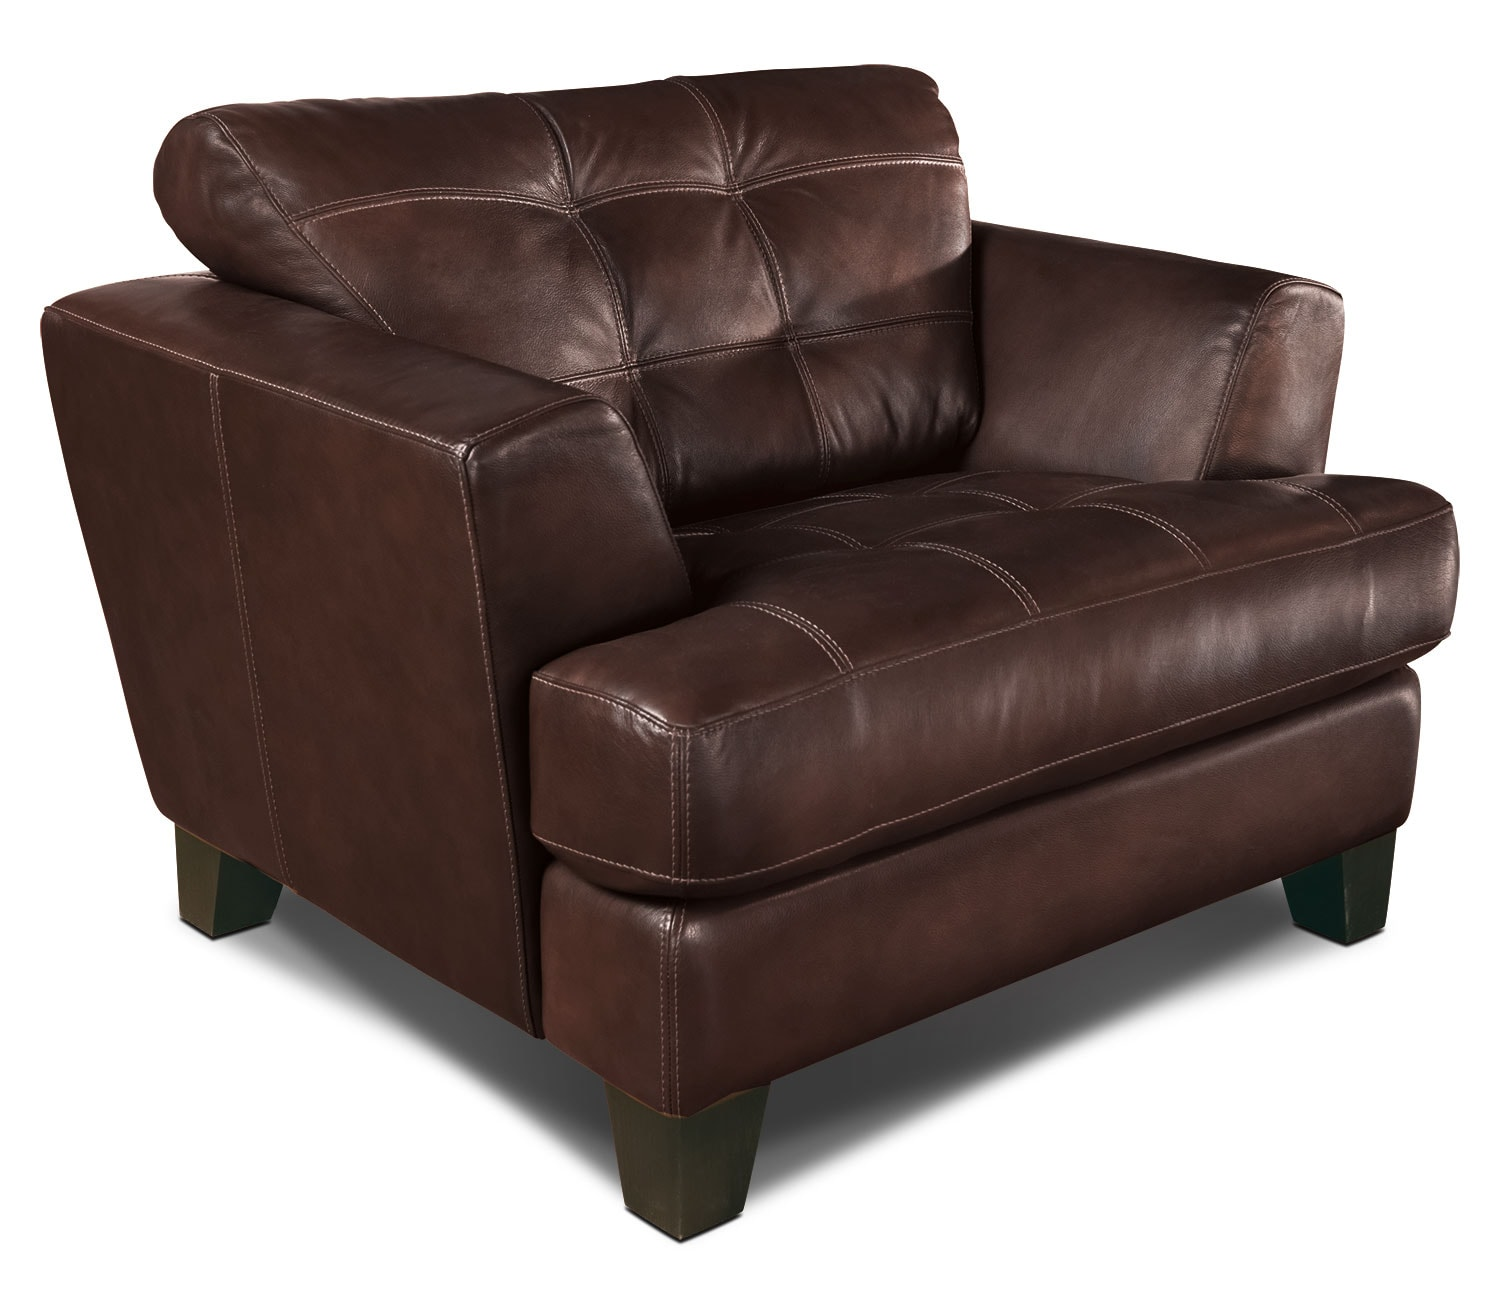 Living Room Furniture - Avenue Genuine Leather Chair - Brown